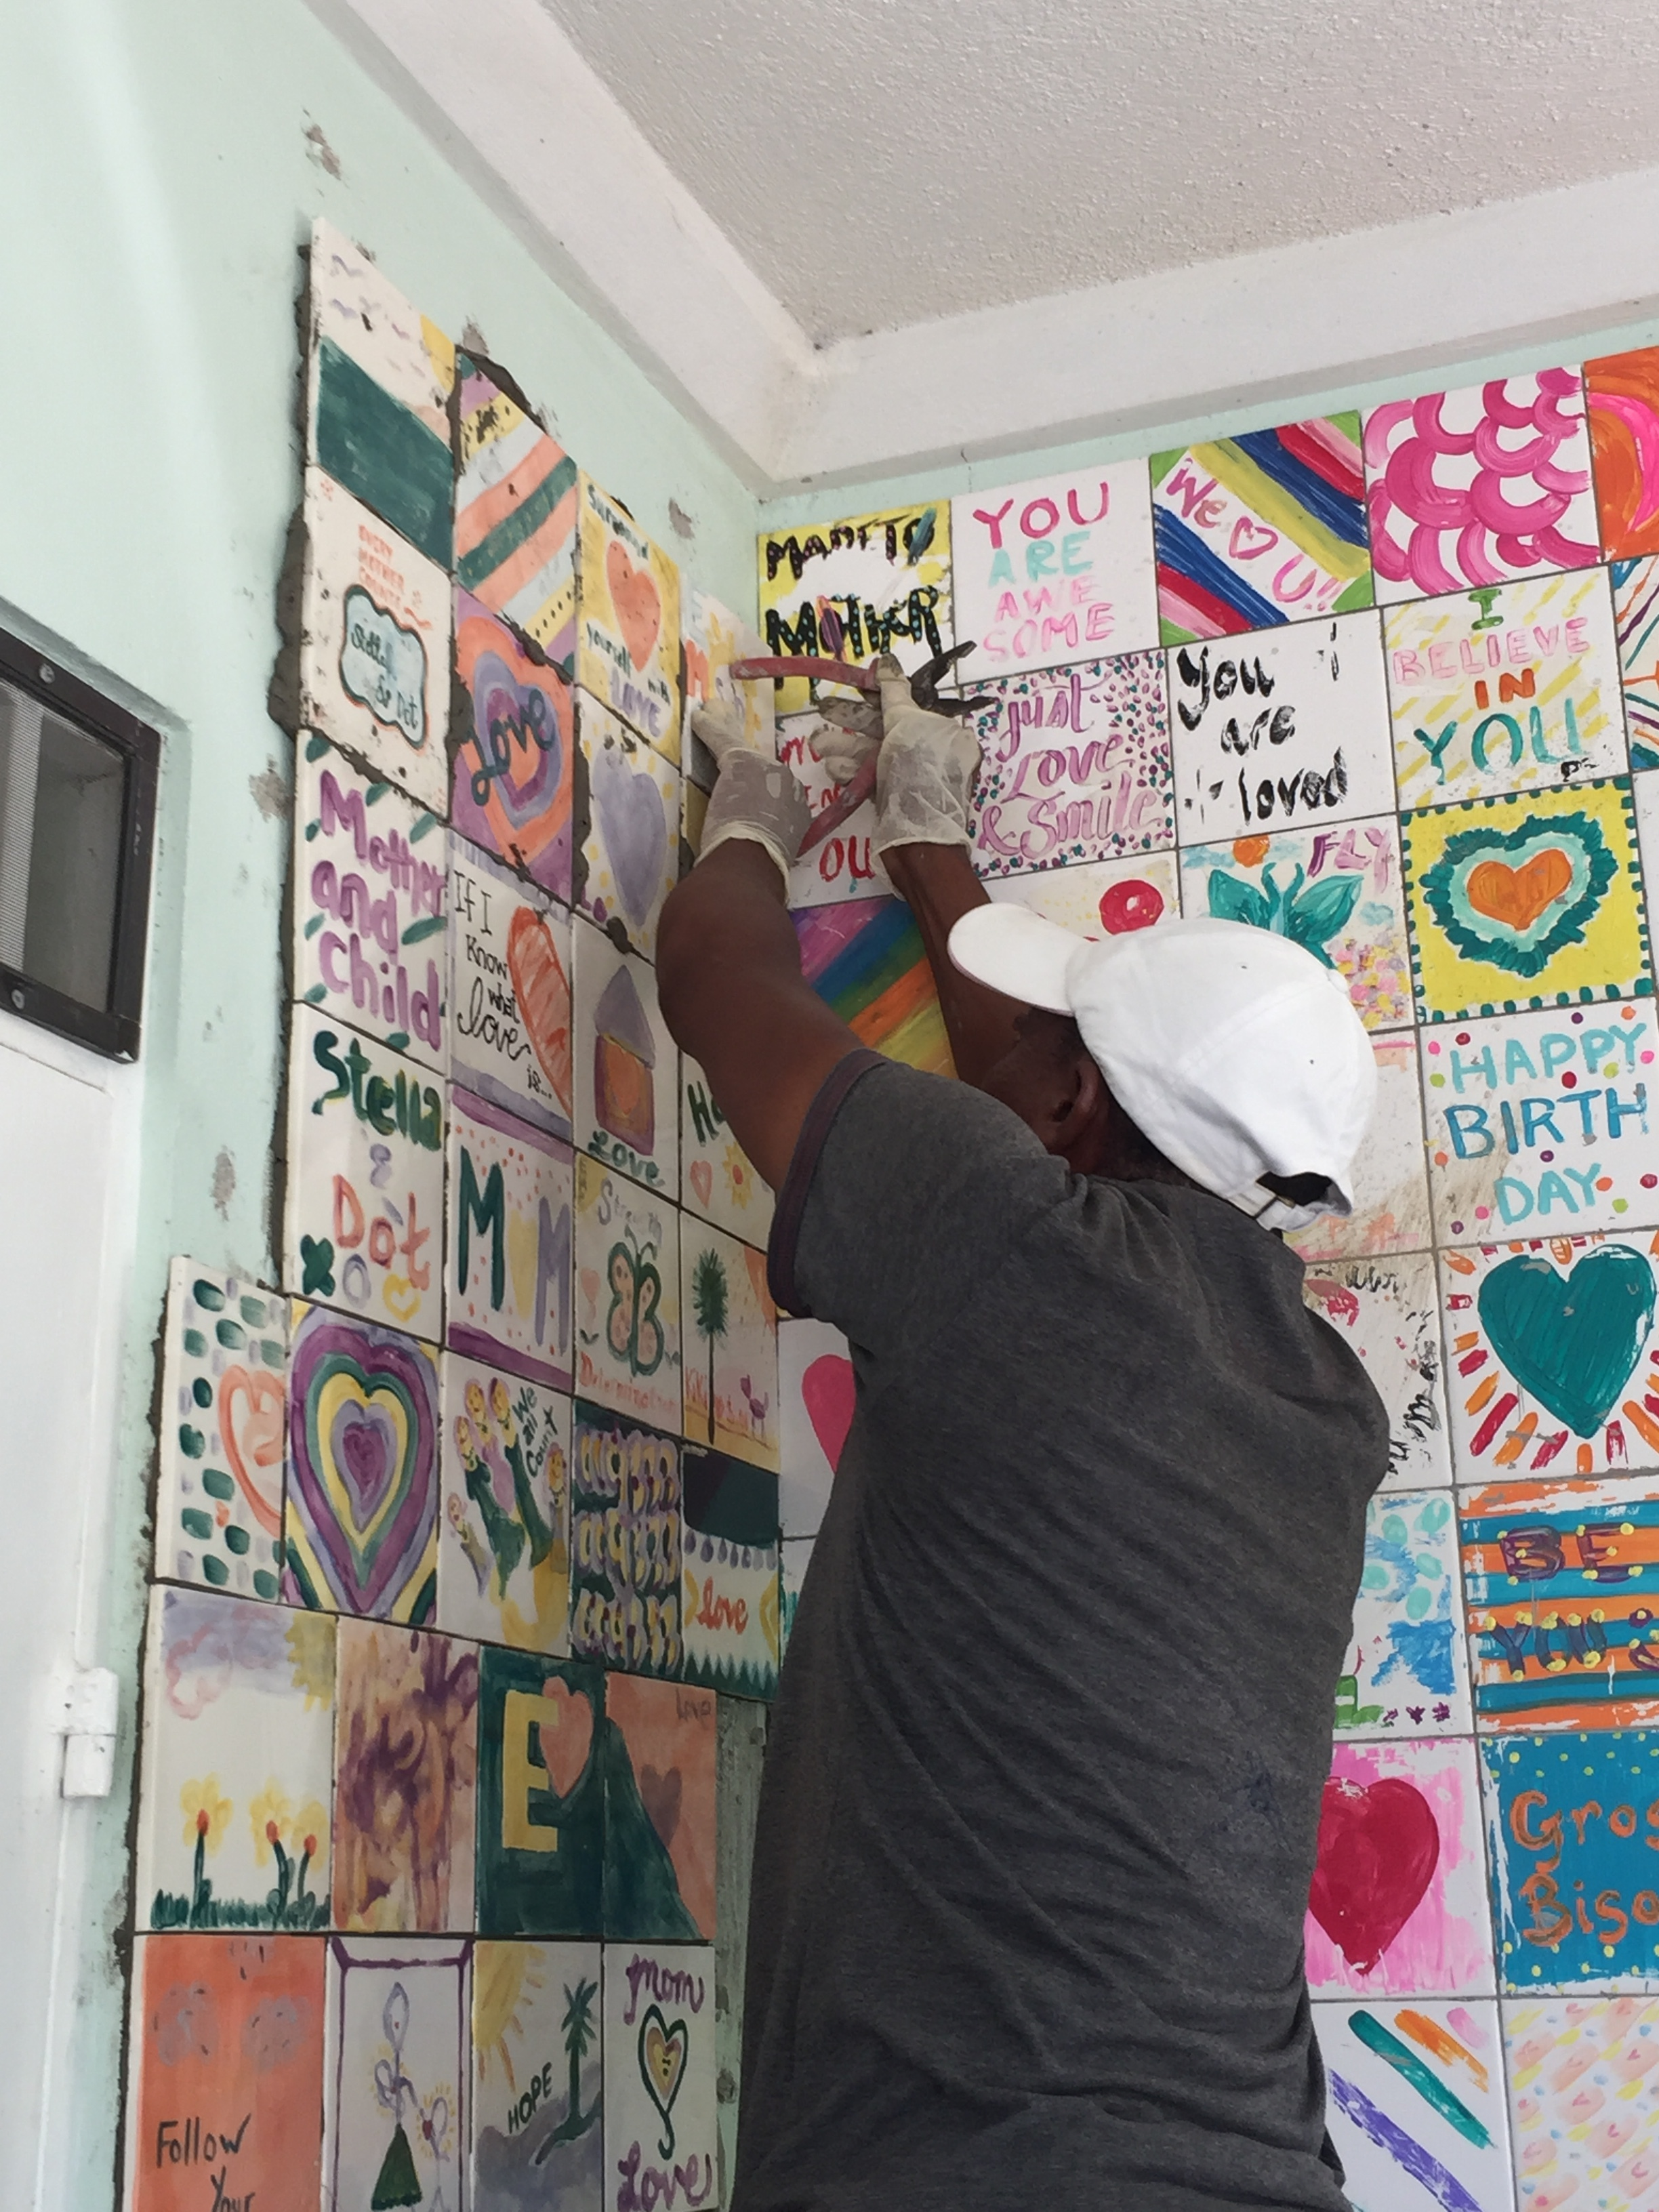 Installing the last few tiles decorated by Stella & Dot Stylists at the Carrie Wortham Birth Center